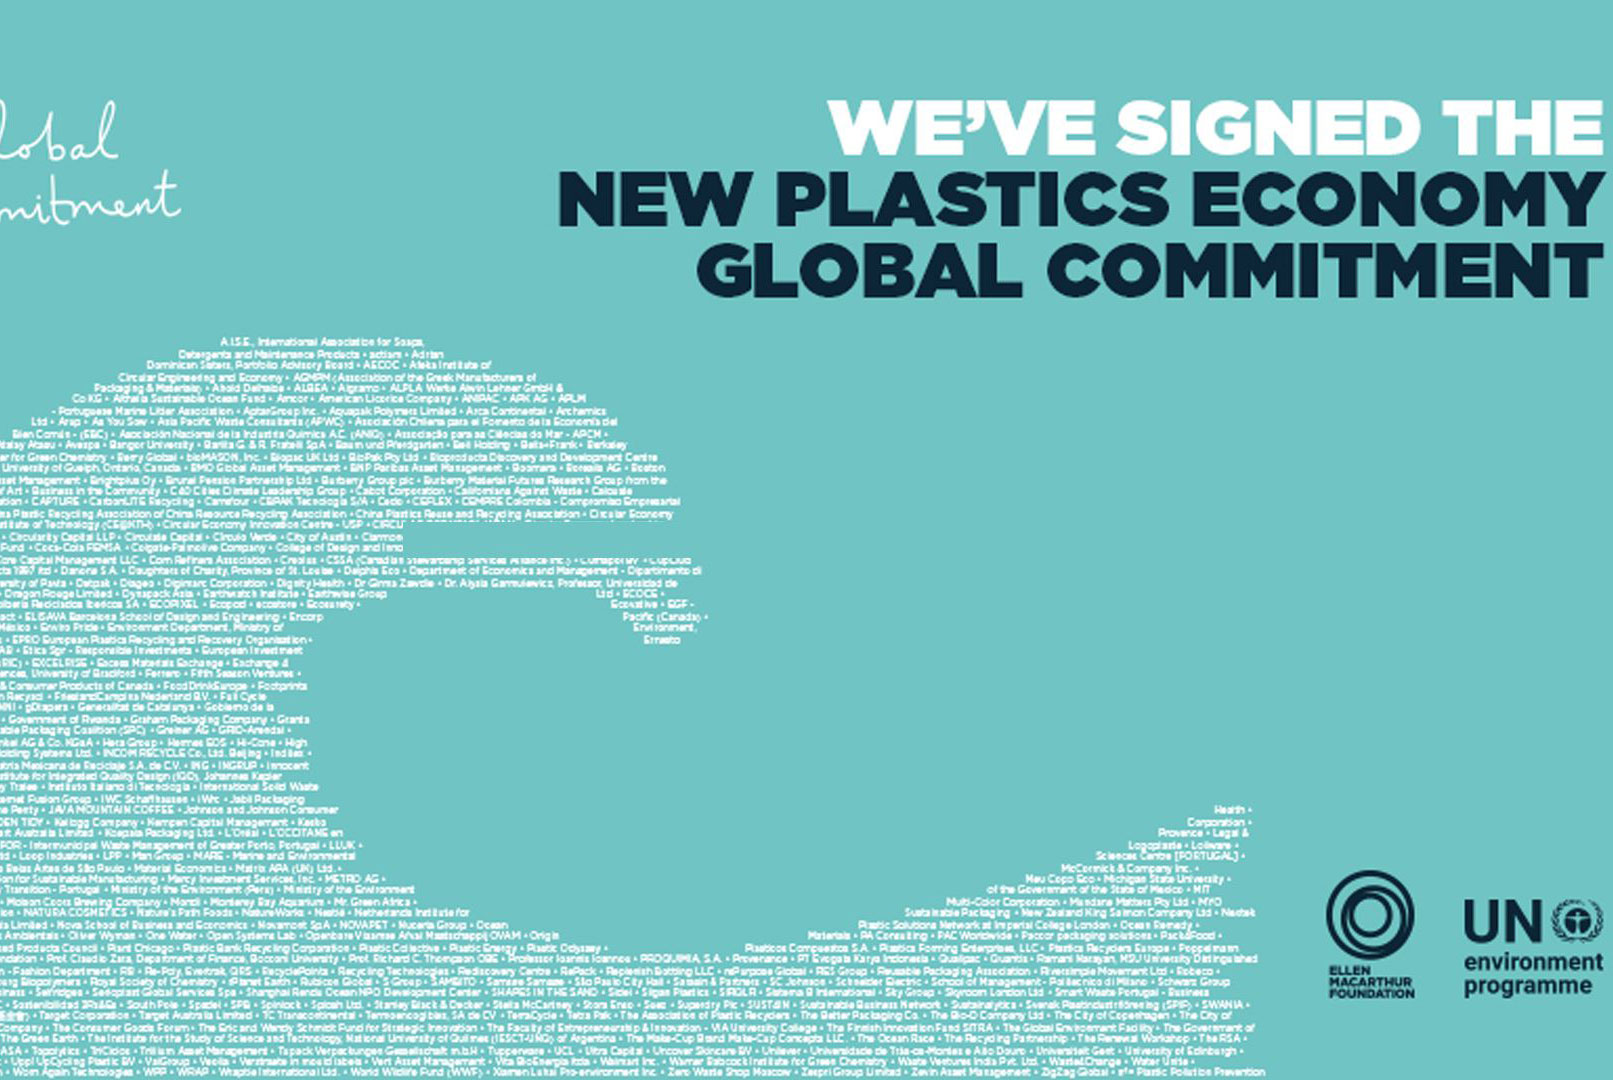 We've Signed the New Plastics Economy Global Commitment